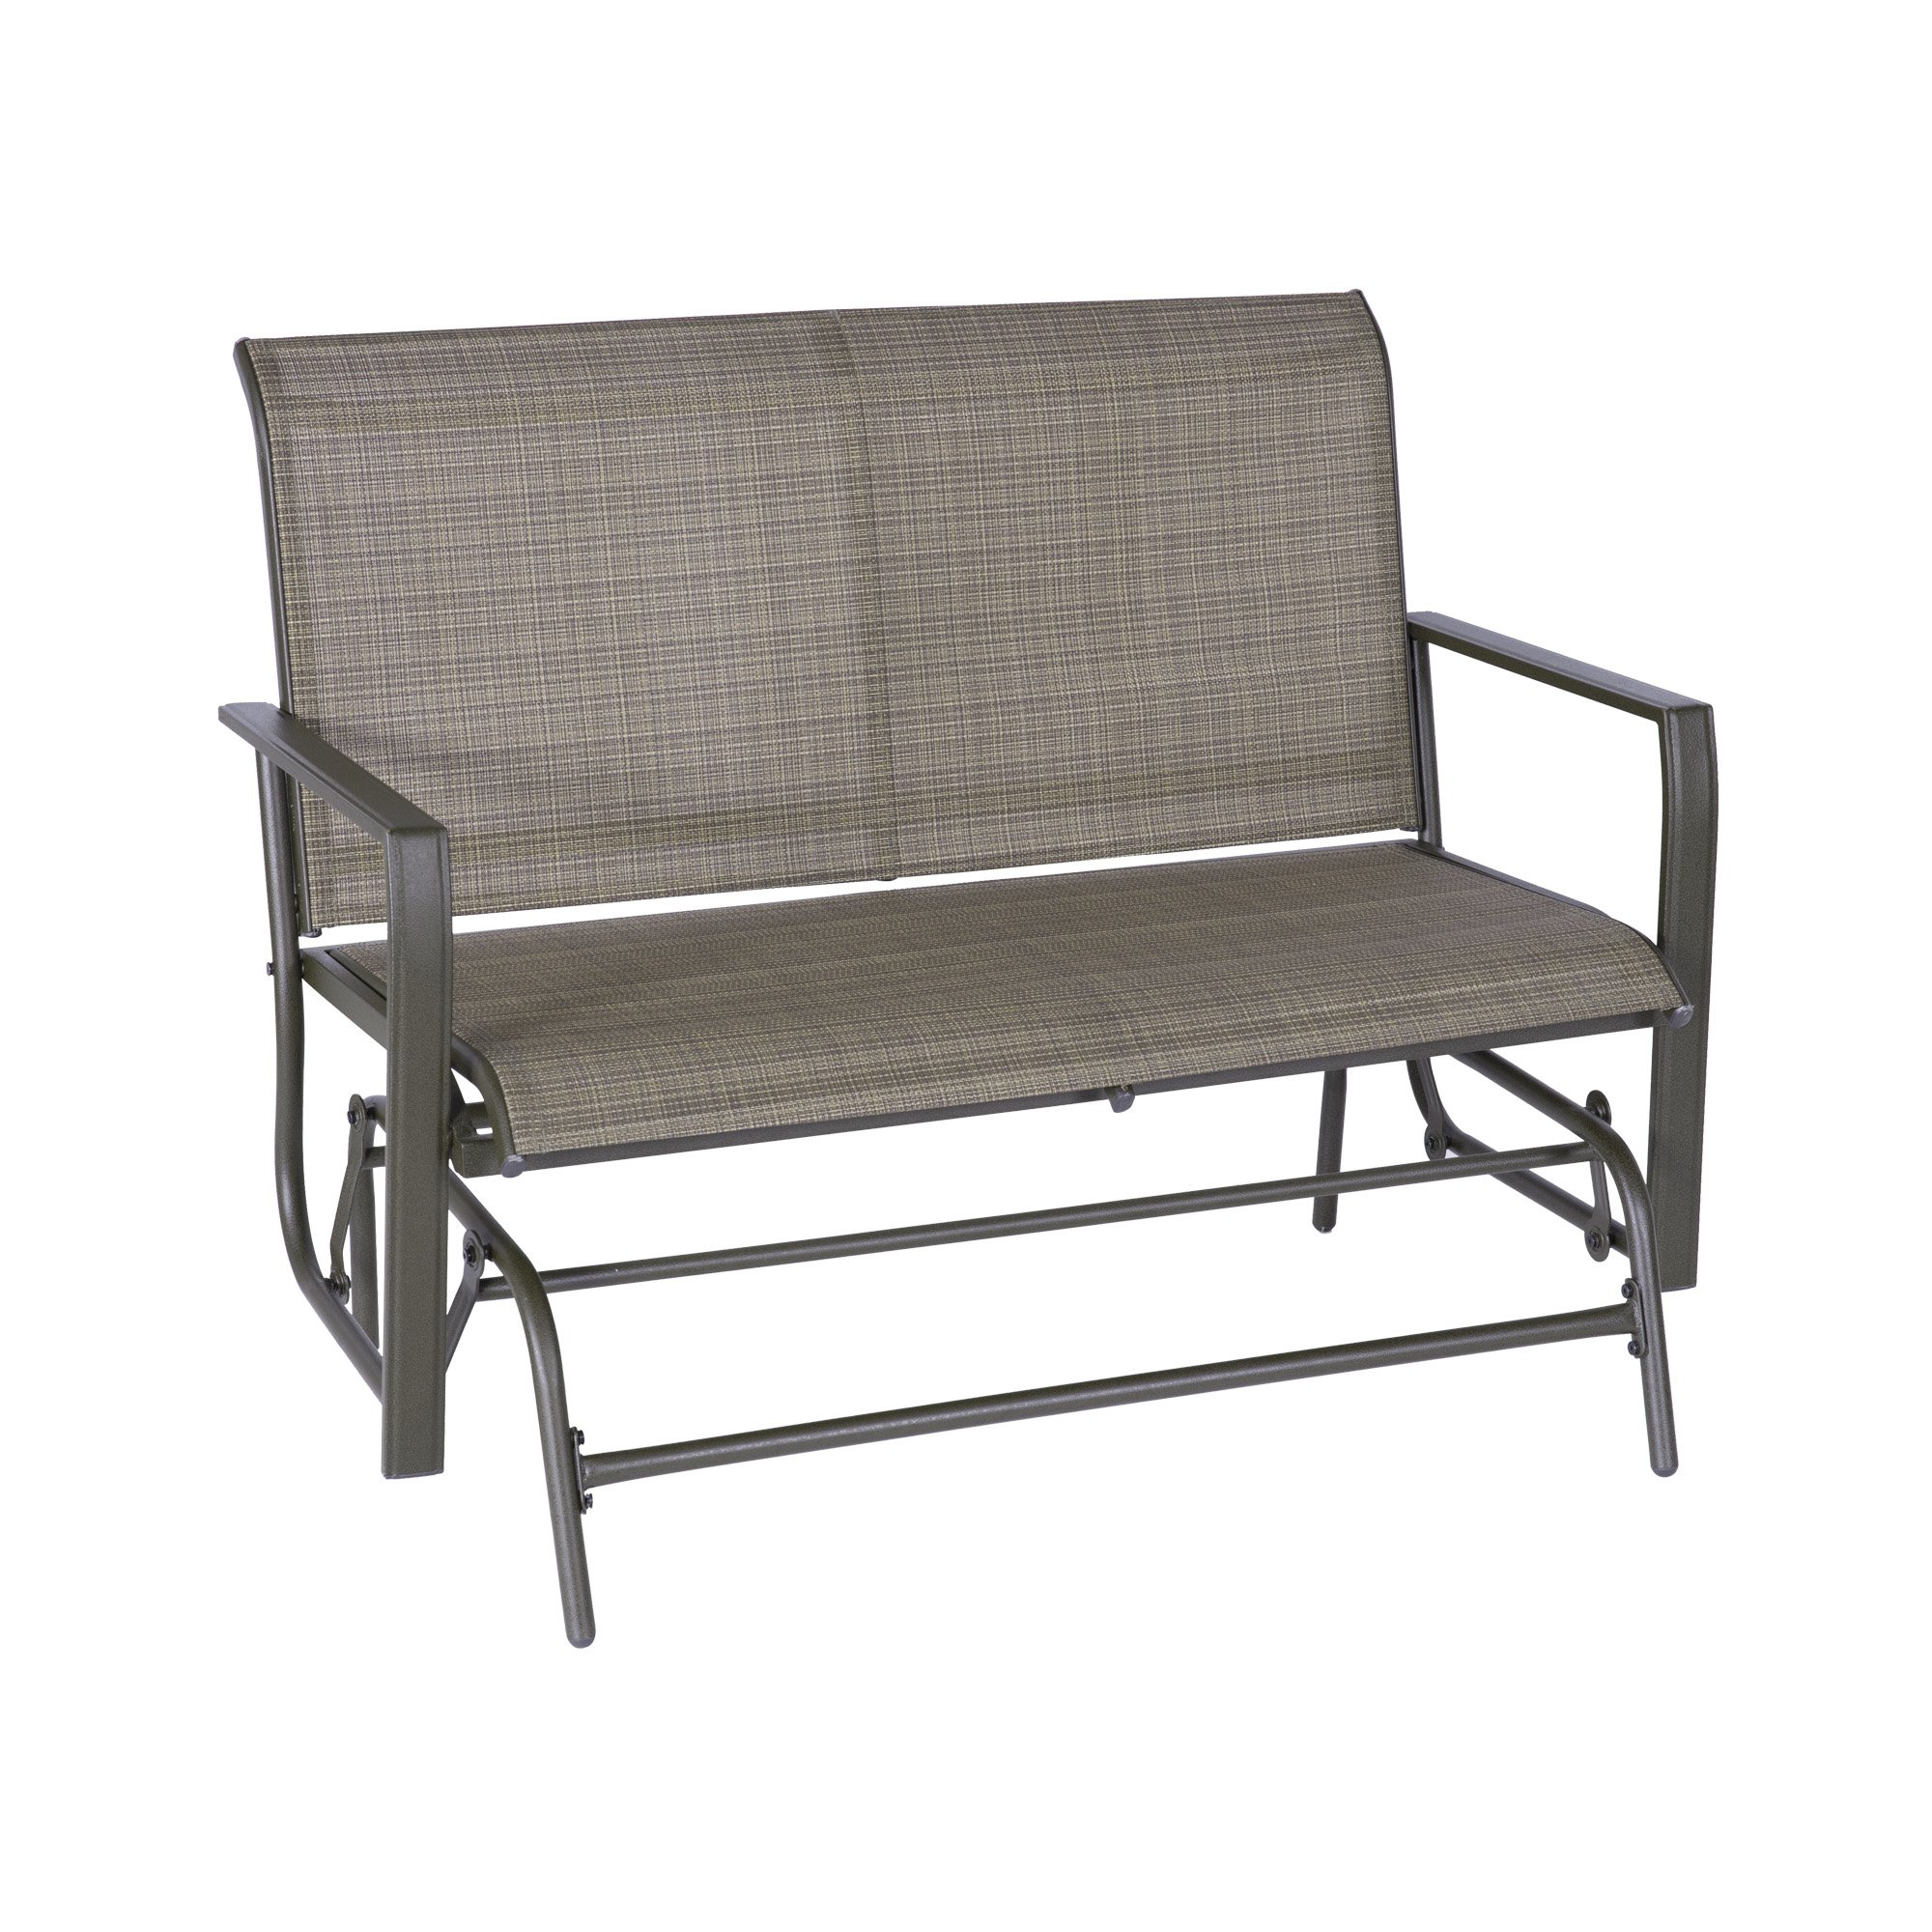 Recent Patio Glider Bench Loveseat Outdoor Cushioed 2 Person For Outdoor Steel Patio Swing Glider Benches (View 27 of 30)